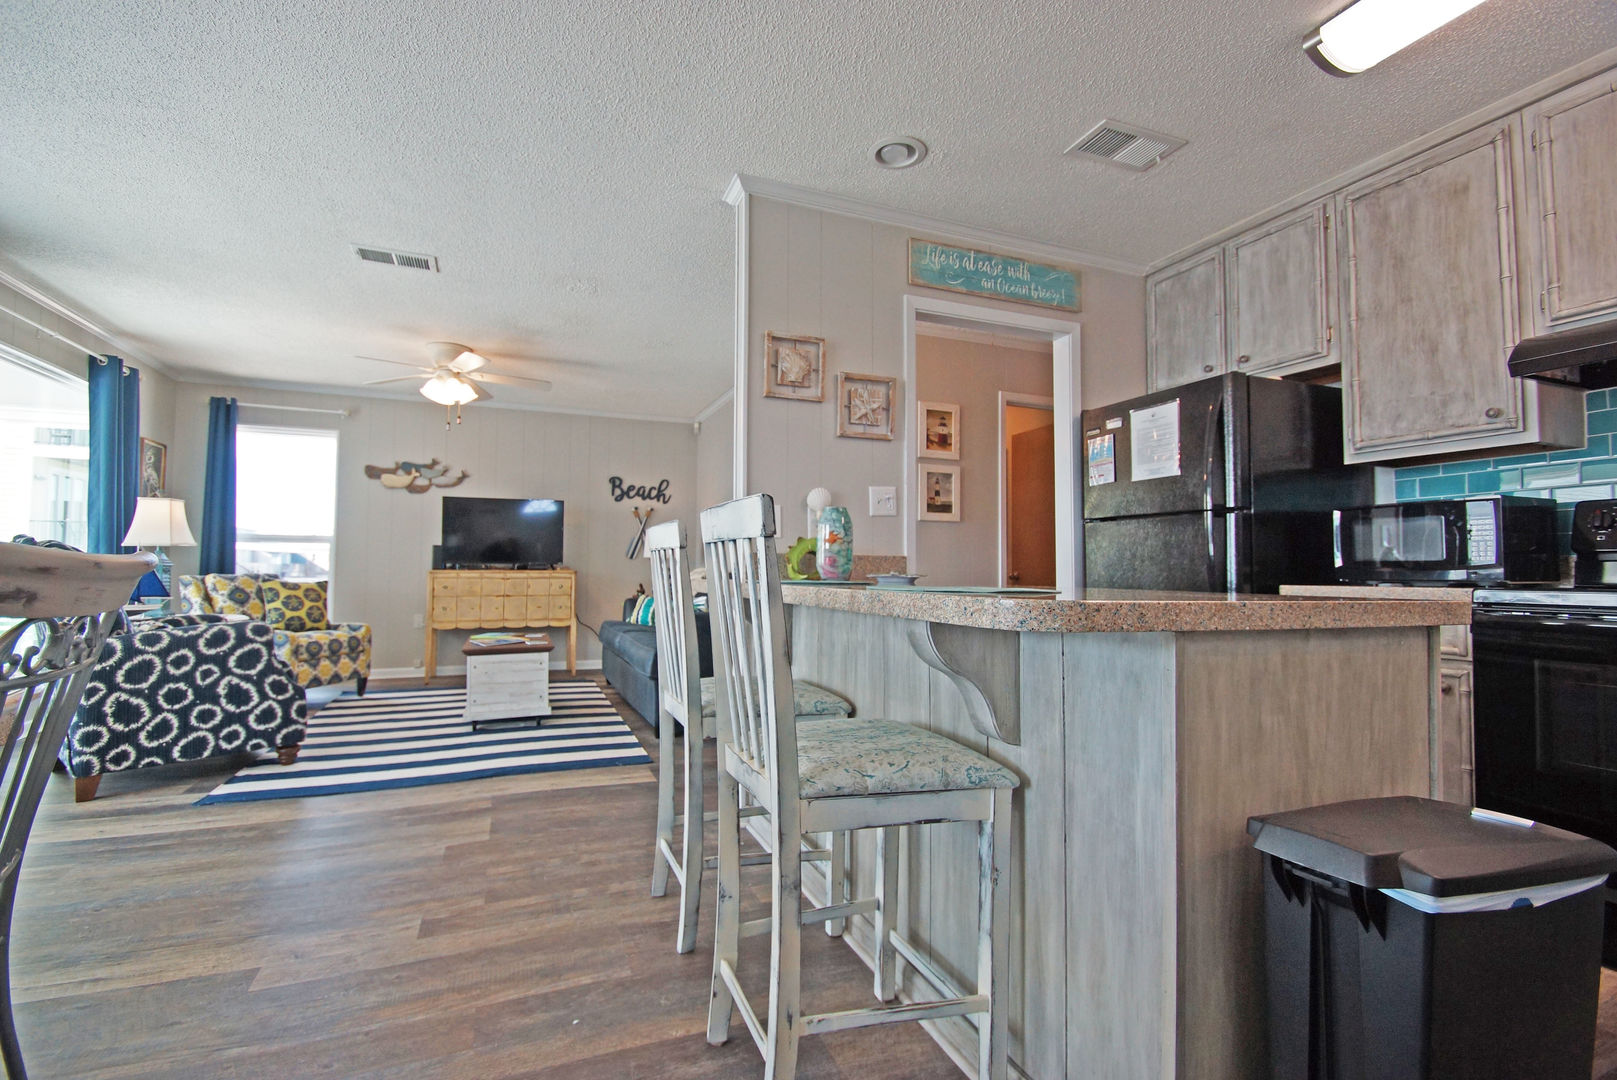 Kitchen Counter, Stools, Refrigerator, TV, and Arm Chairs.